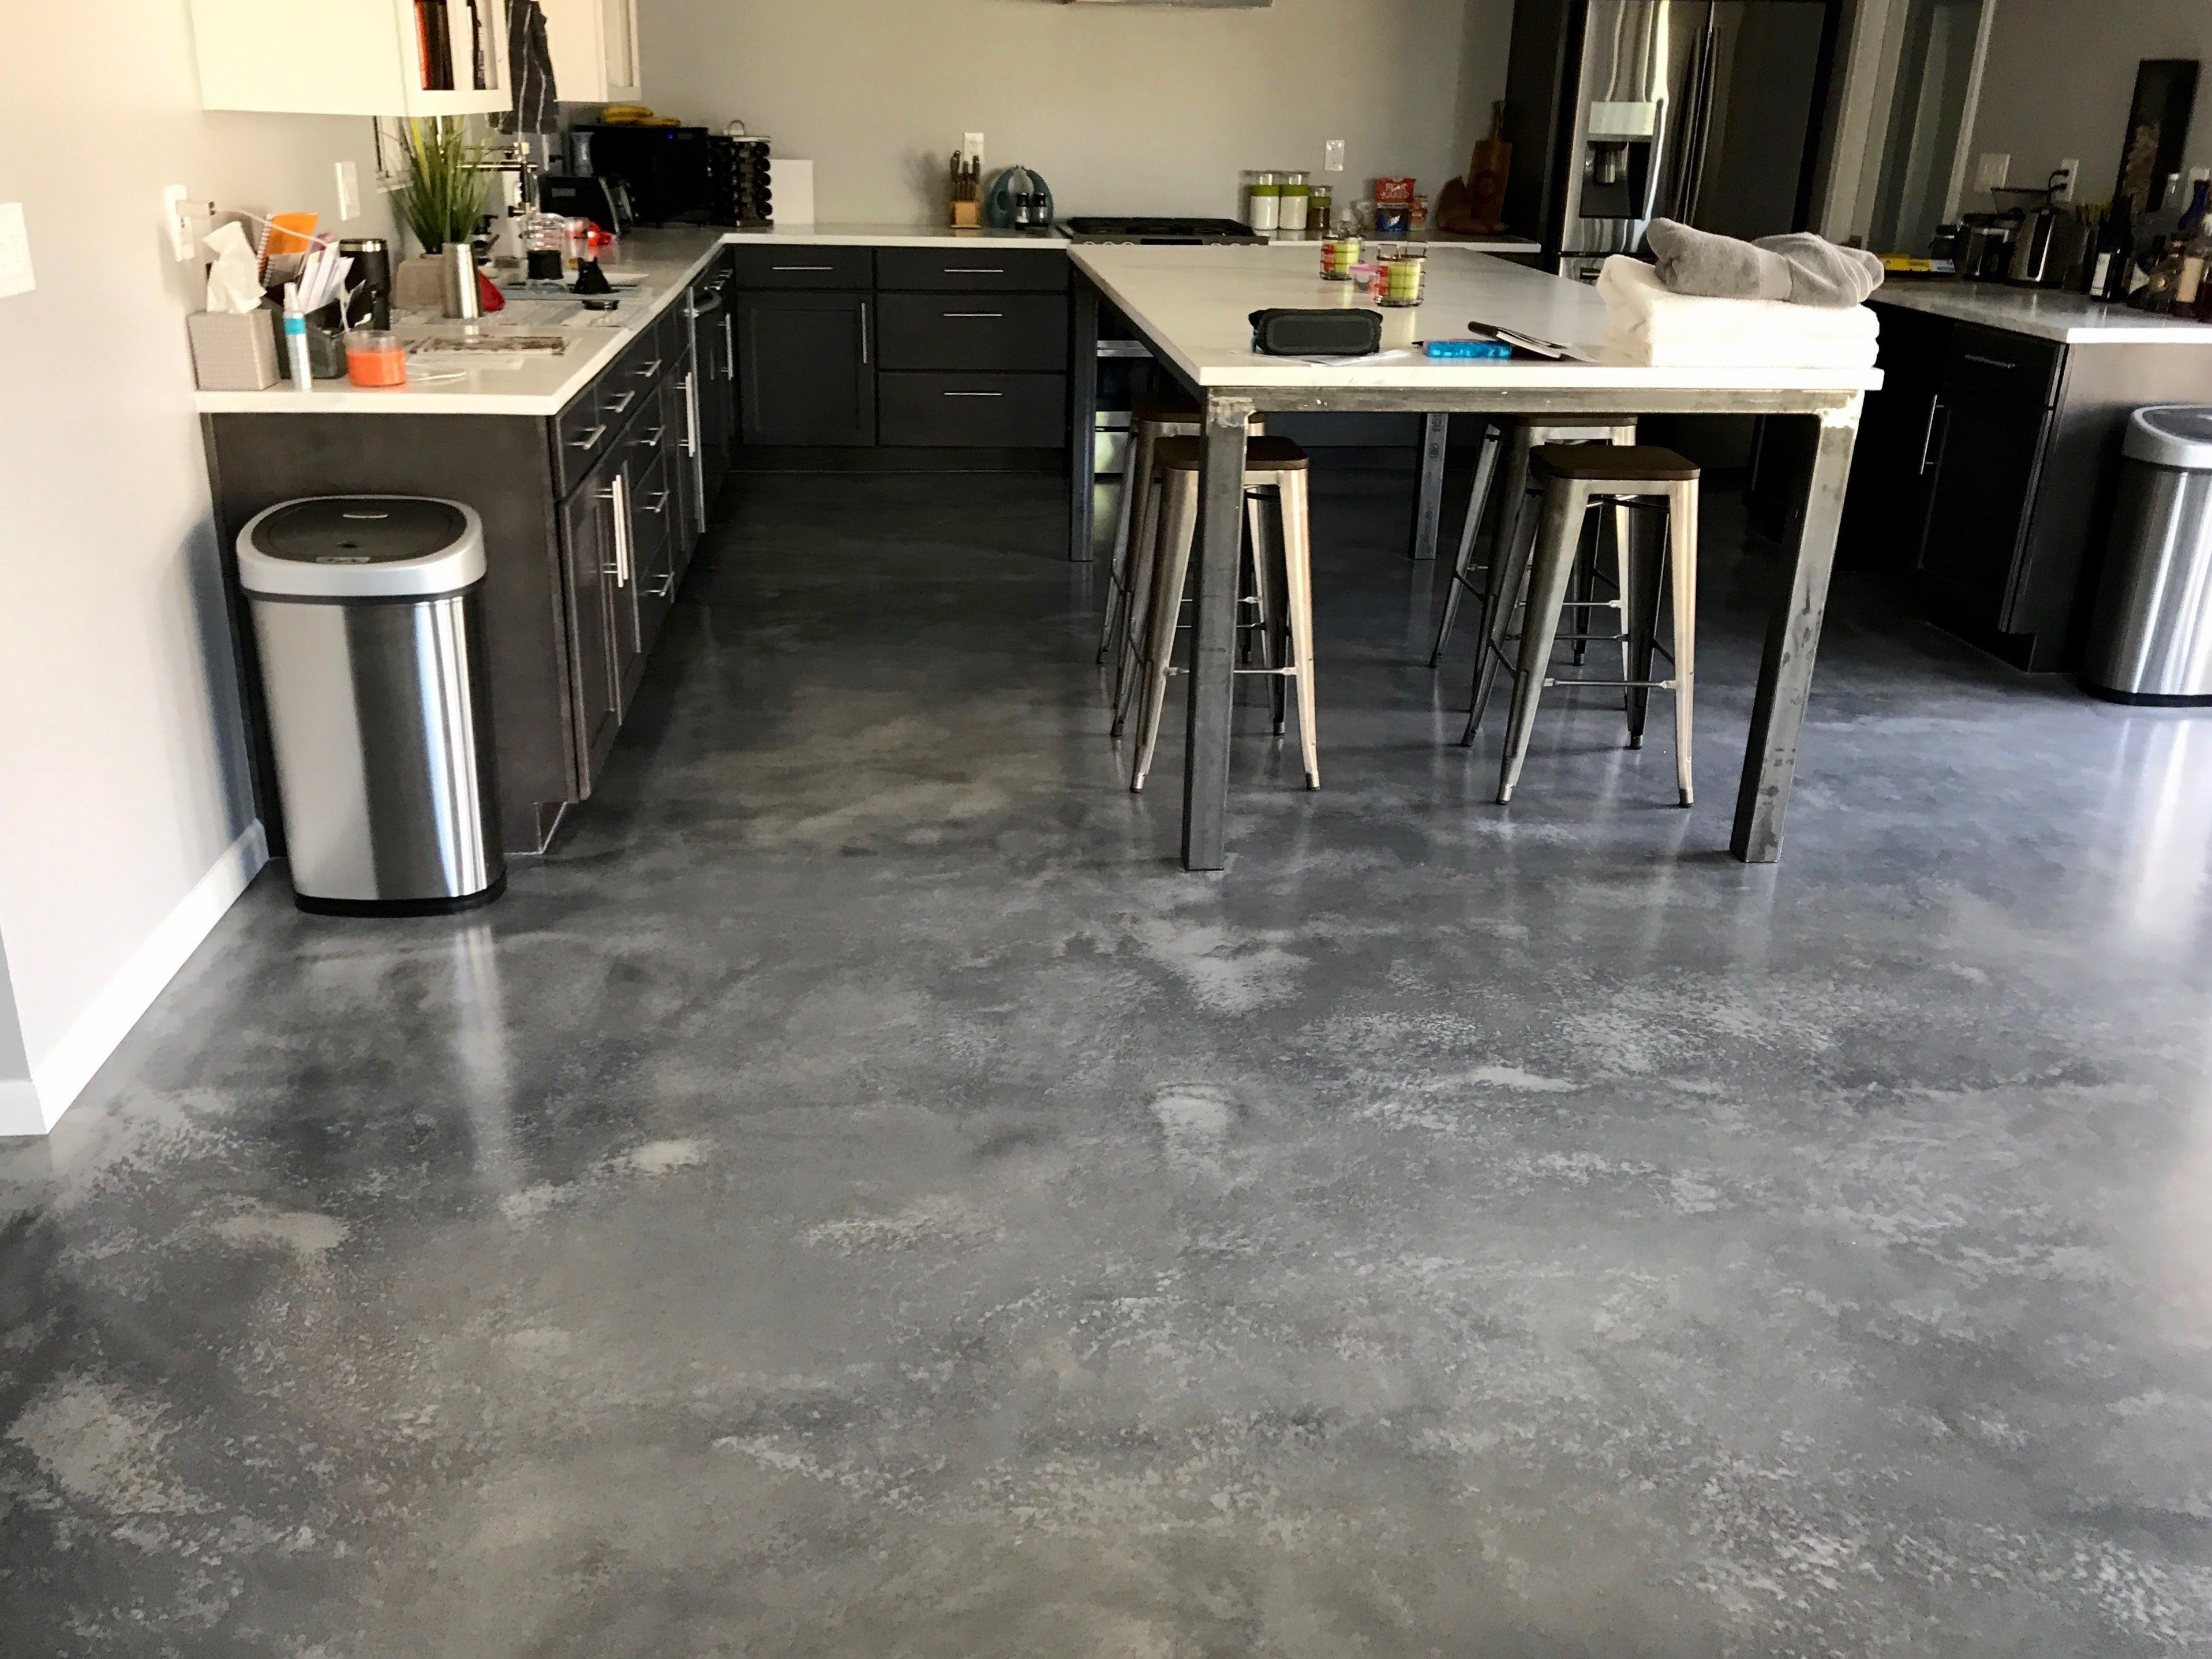 Countertops And Floors Done By Elastocrete And A Few Teams In Phoenix